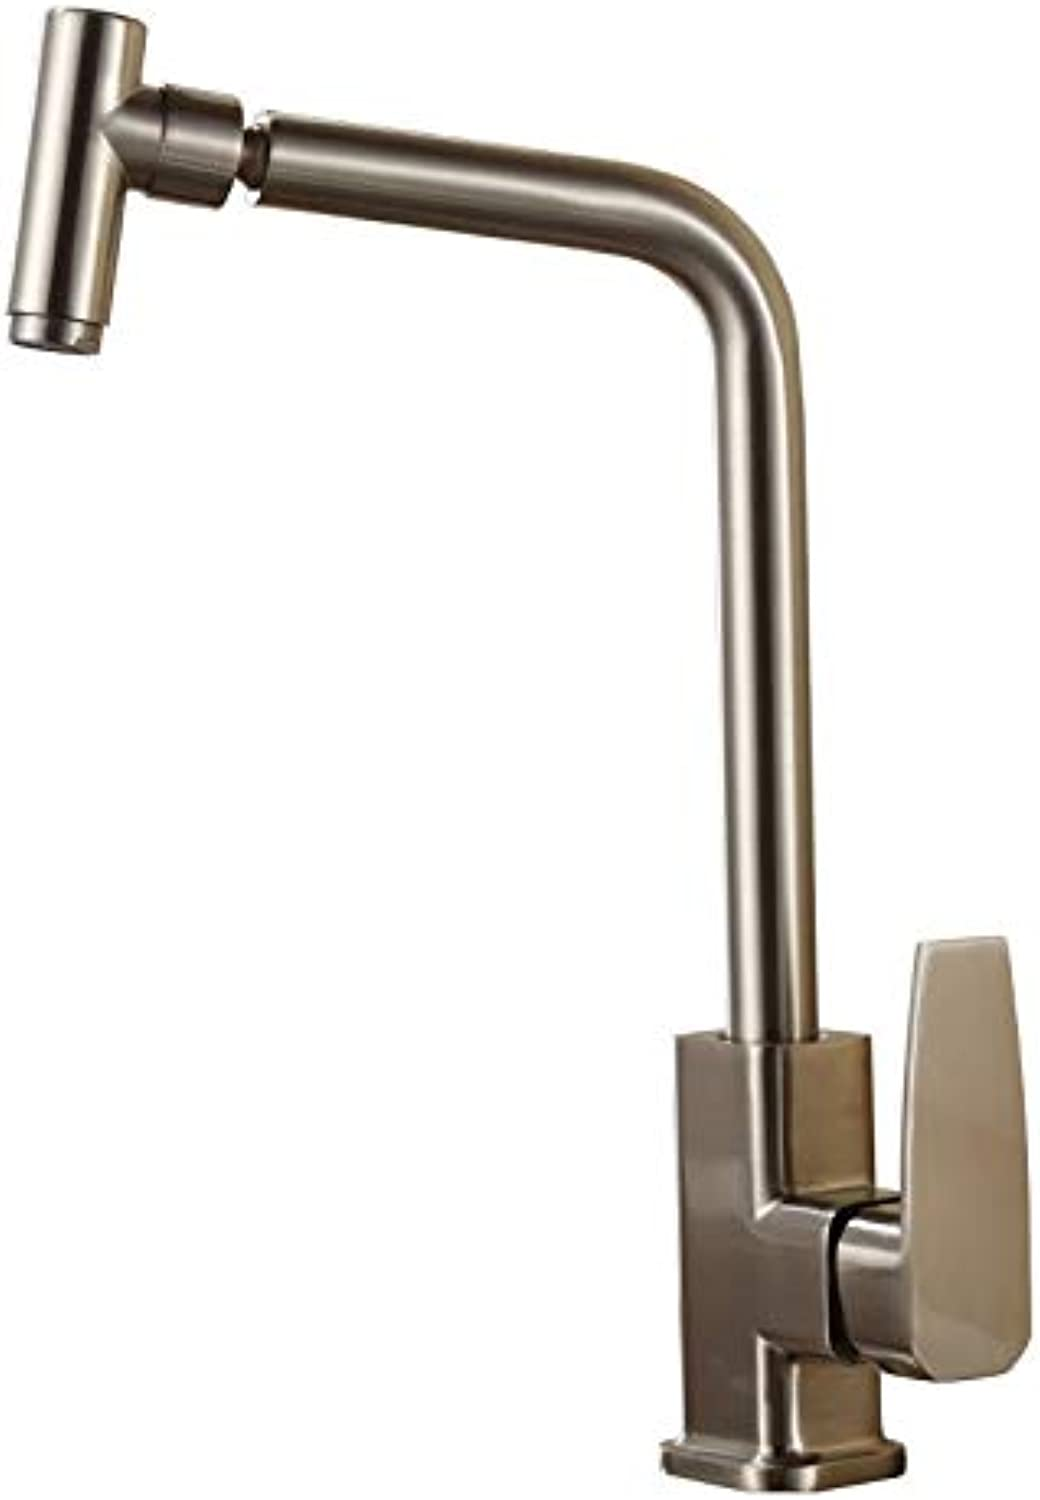 redOOY Faucet Tap ?Electroplated Brushed Kitchen Sink Faucet?360?Degree redating?Faucet